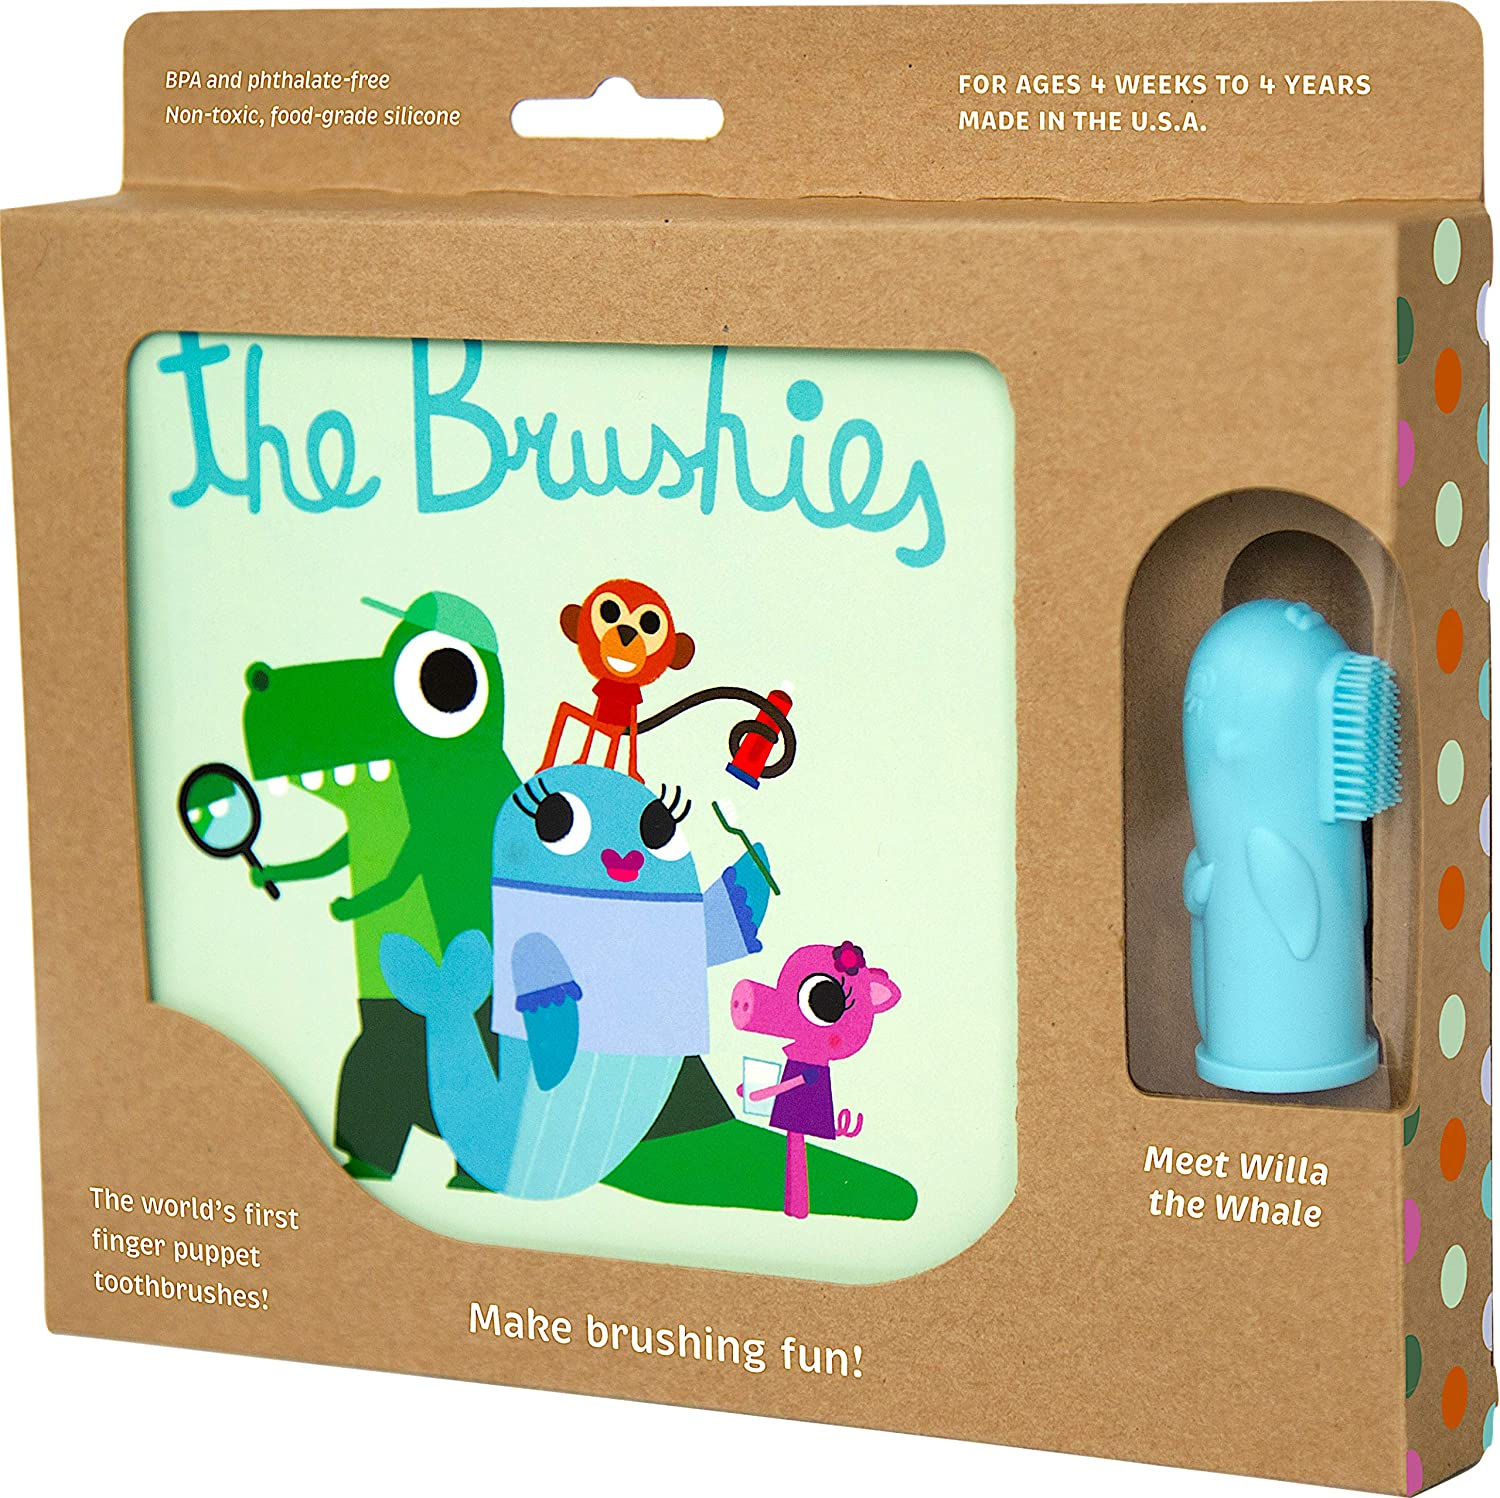 Baby and toddler toobrush and storybook - Team Member: Willa the Whale! The Brushies 101072